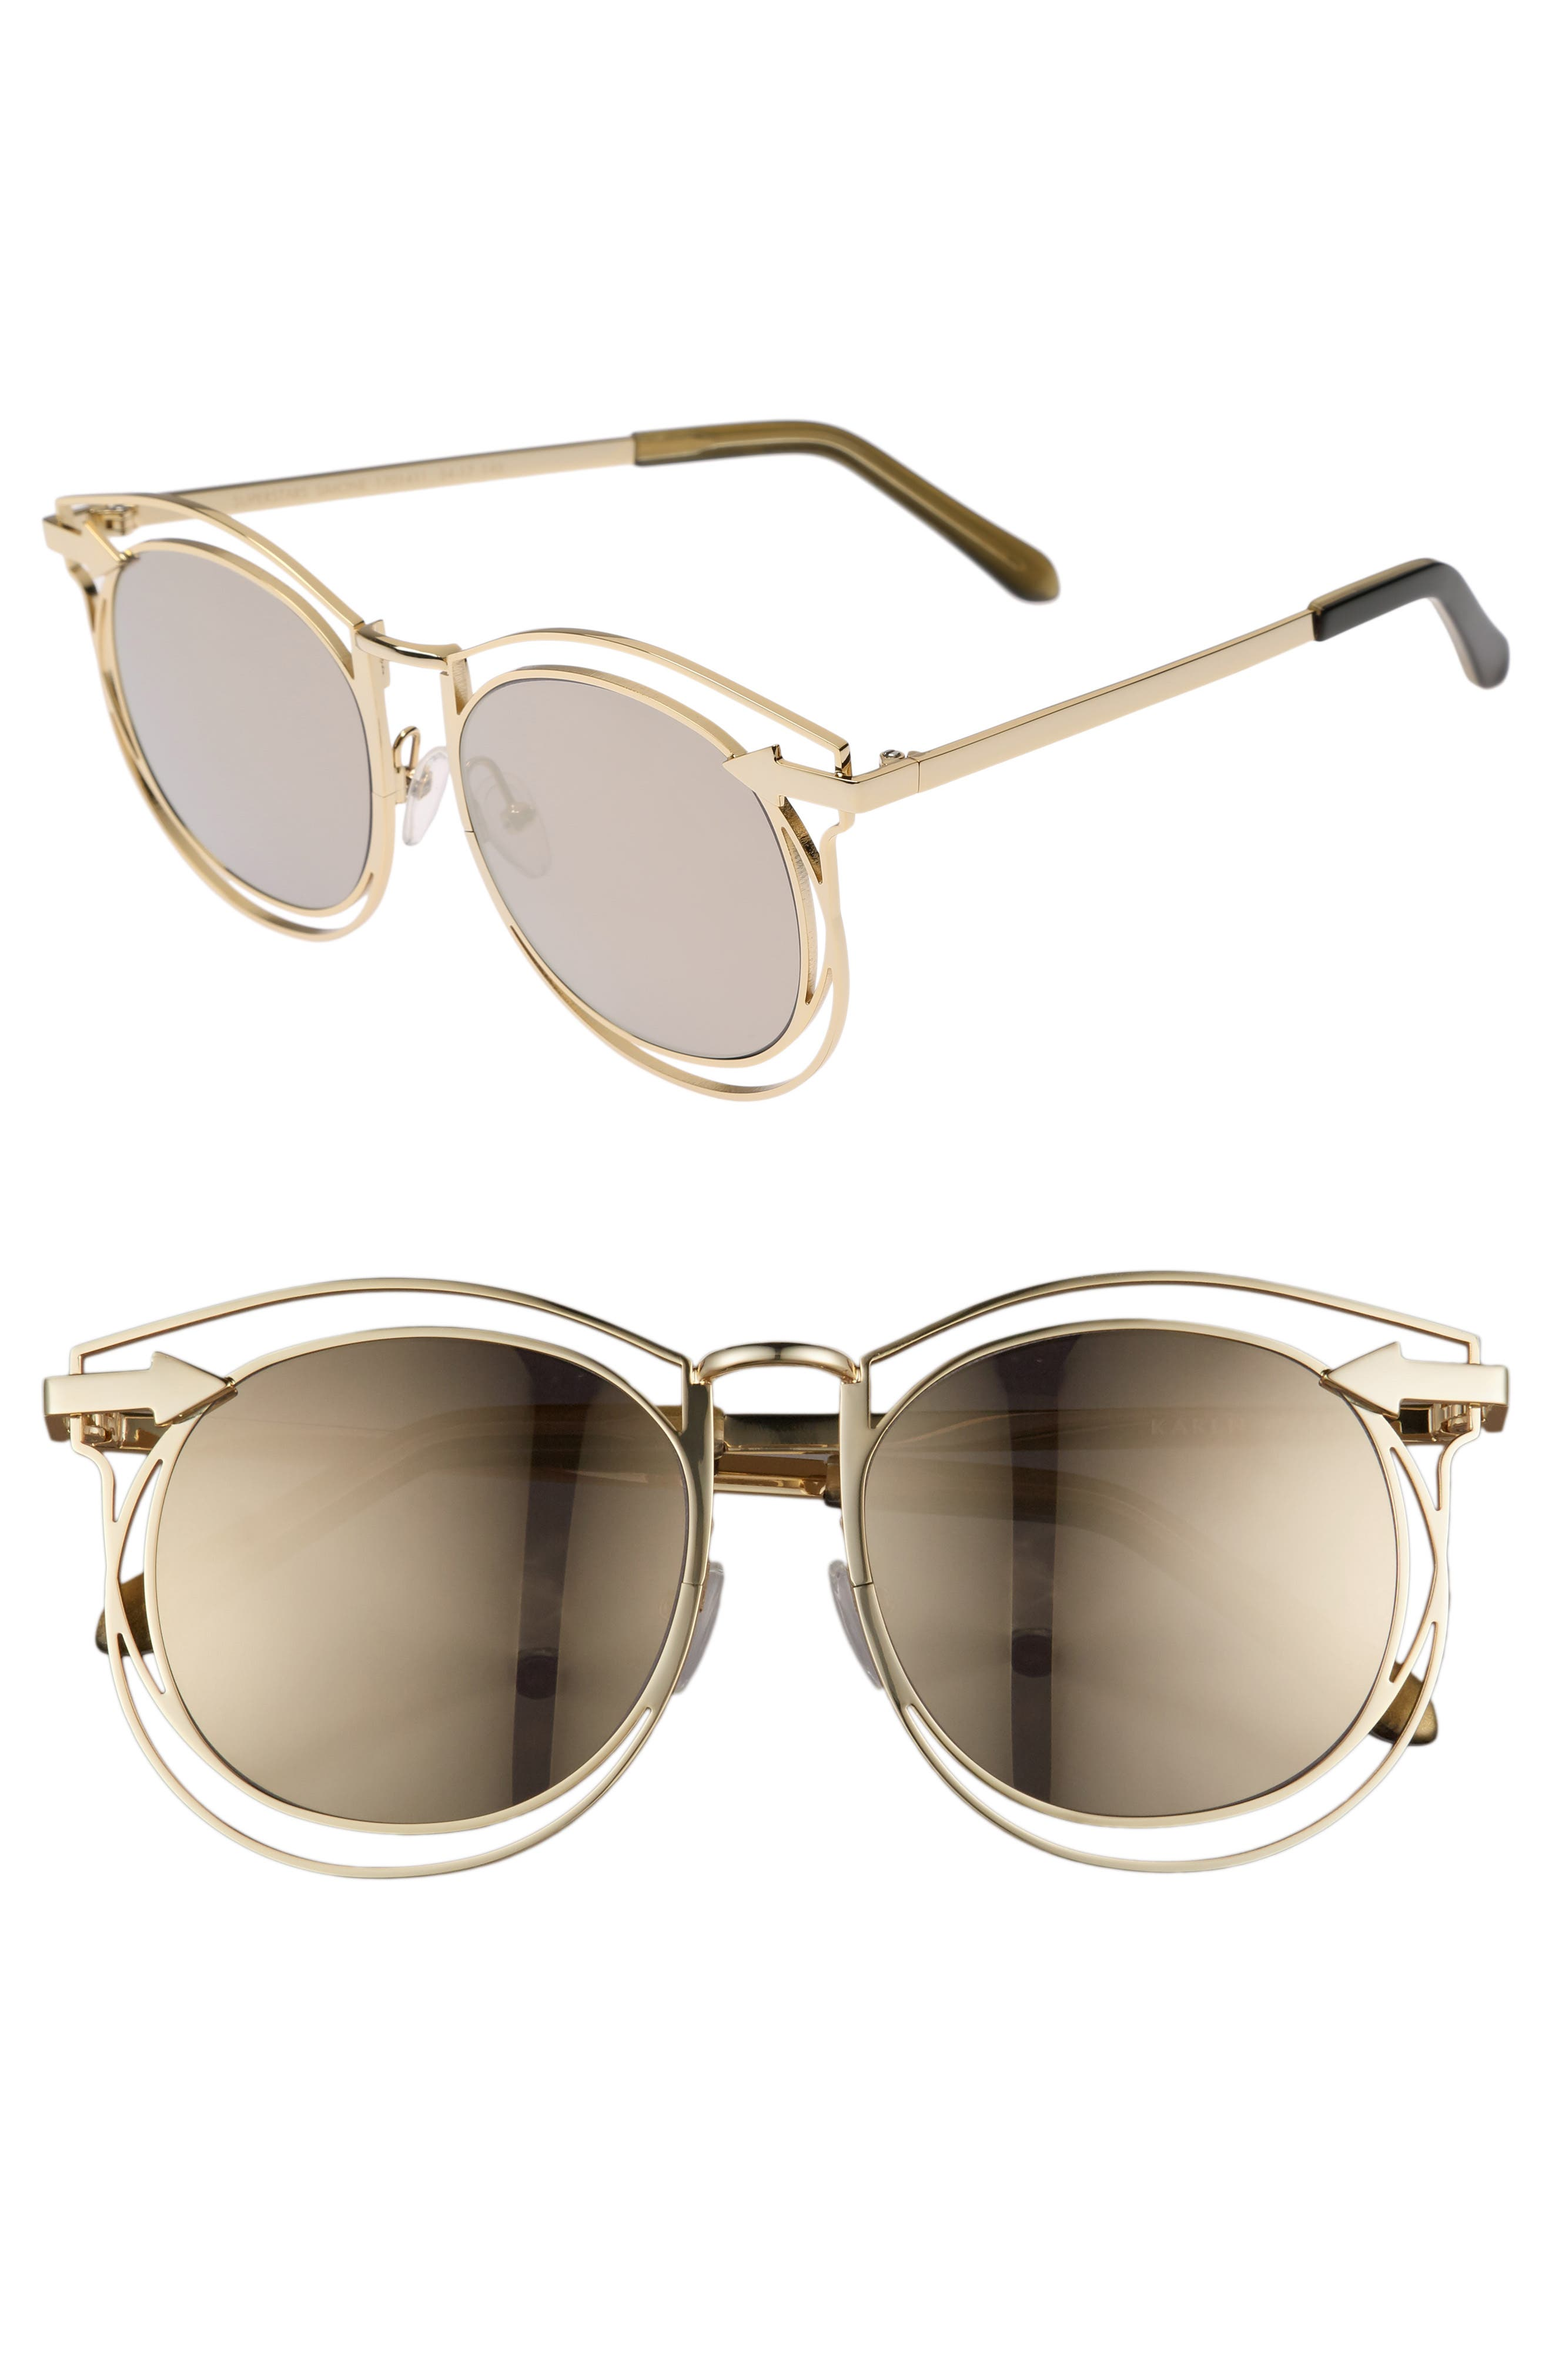 Superstars - Simone 54mm Sunglasses,                         Main,                         color, GOLD